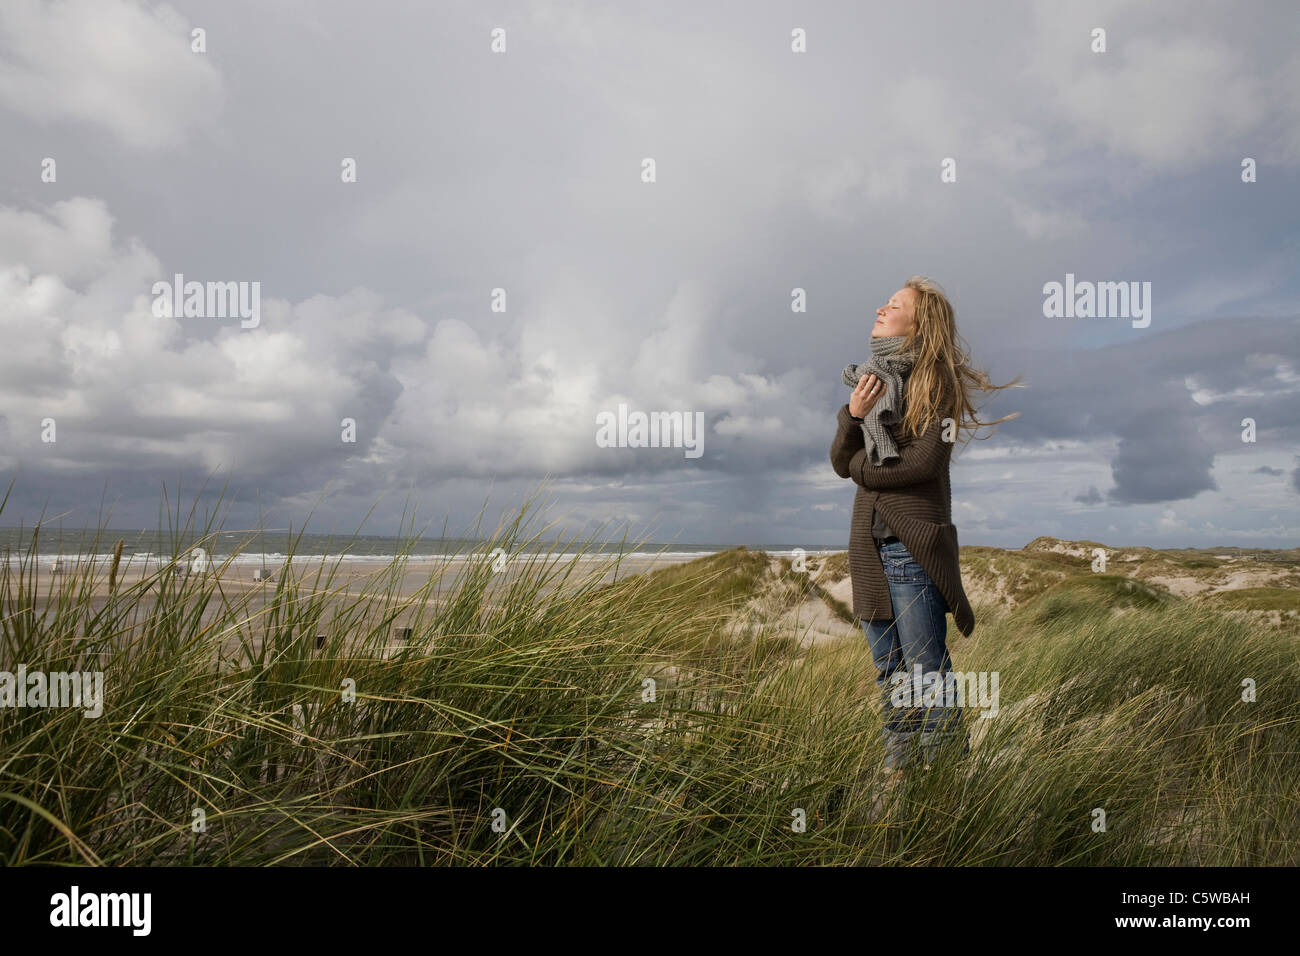 Germany, Schleswig Holstein, Amrum, Young woman on grassy sand dune - Stock Image